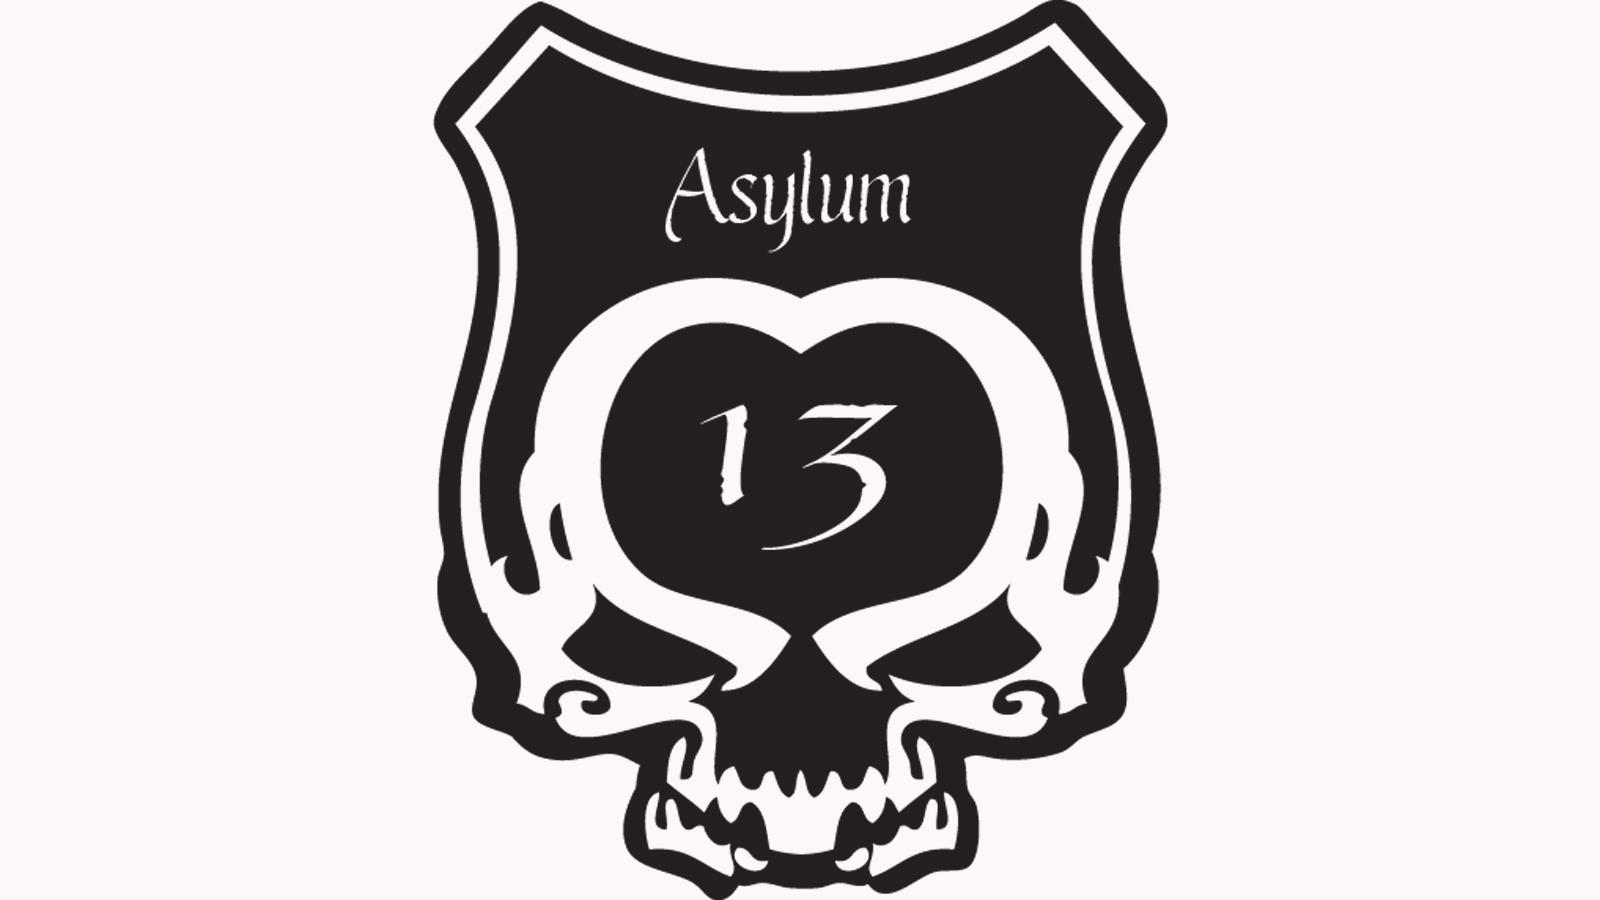 Asylum 13 Connecticut Coming Soon